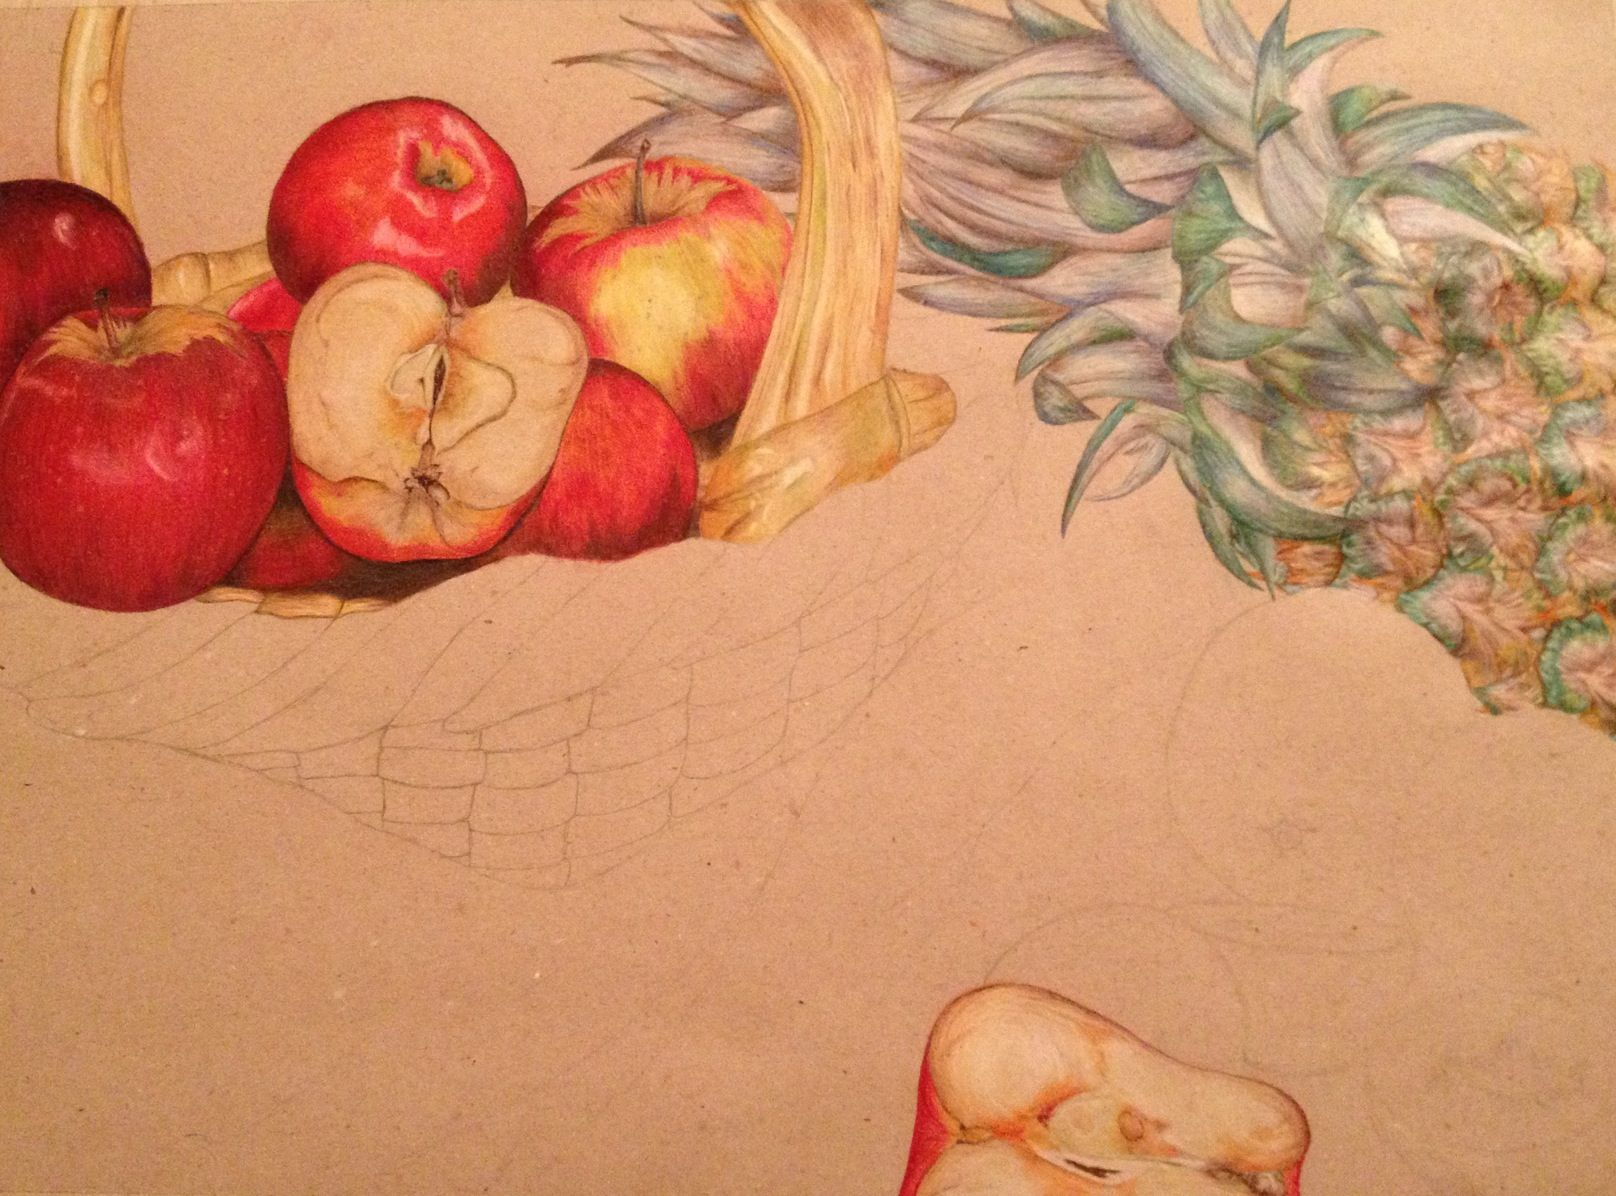 Progression Of Final Outcome For My Higher Expressive